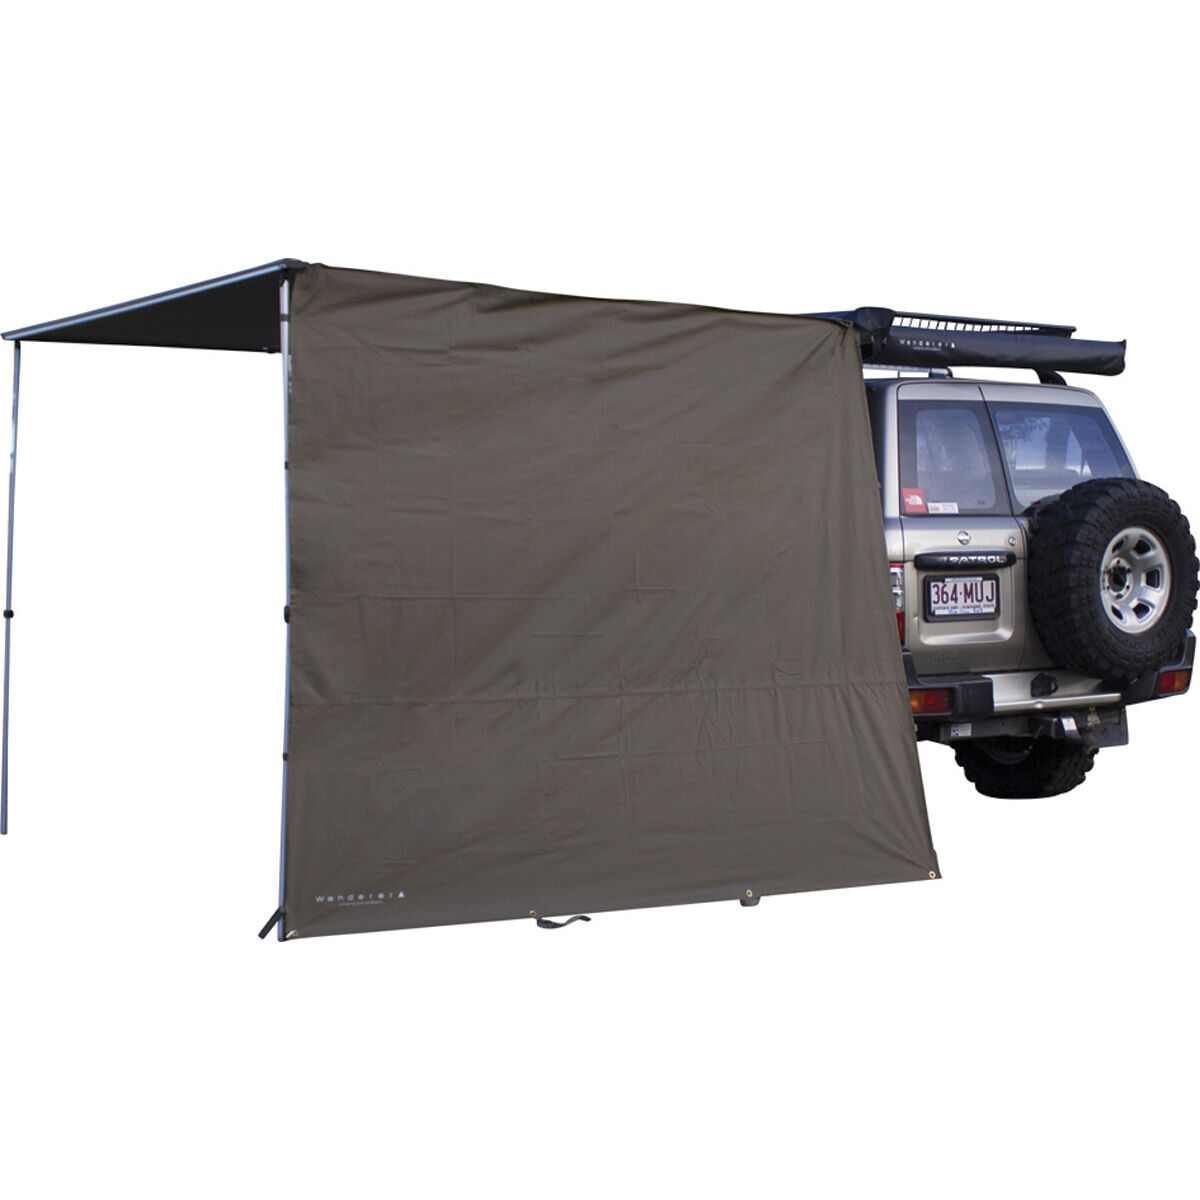 2.0M x 2.2M Side Awning Extension For Pull Out Awning